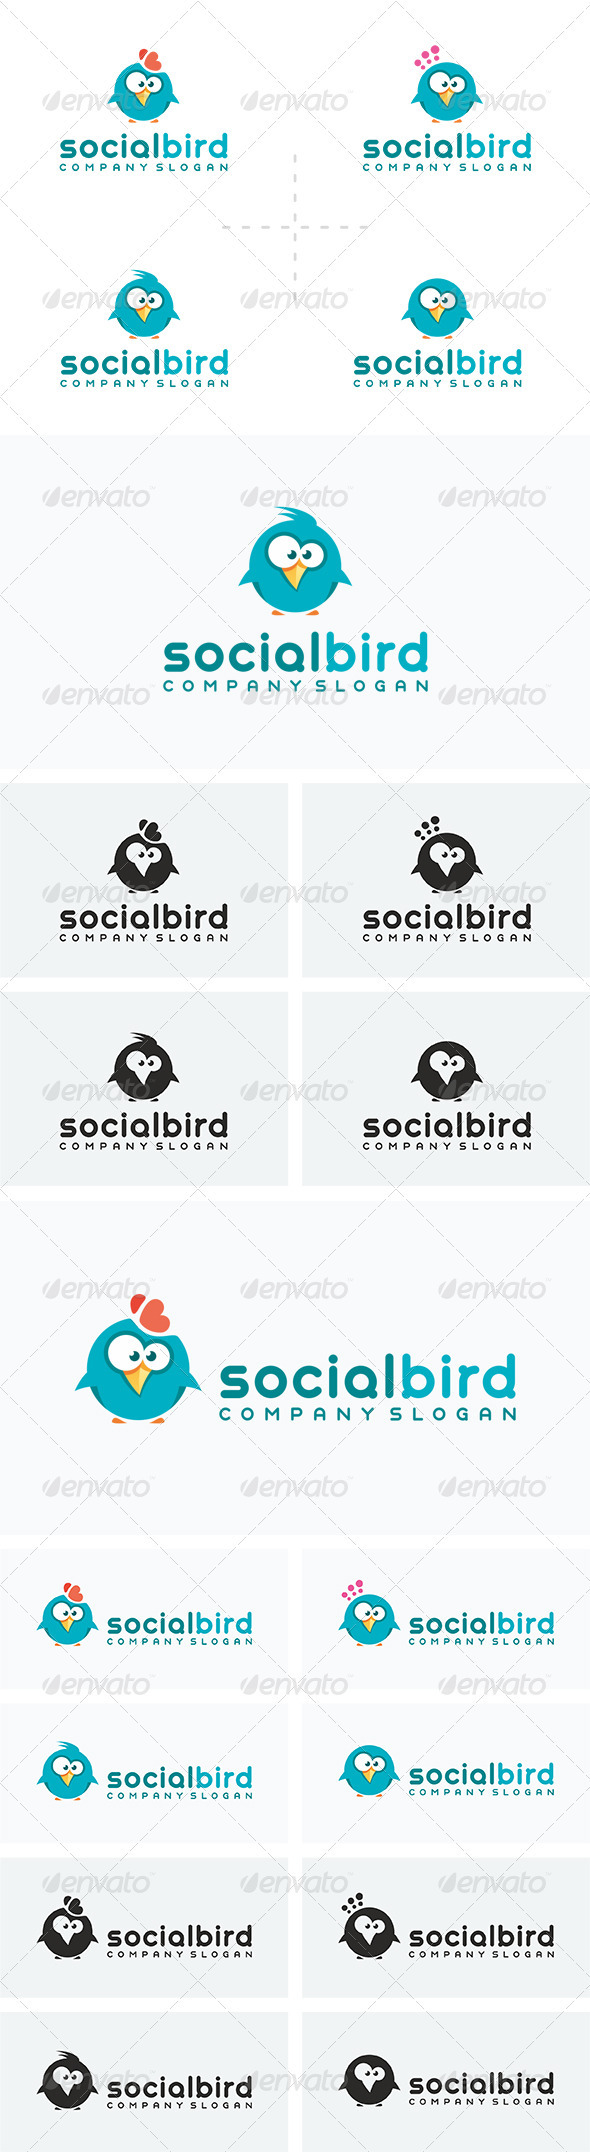 GraphicRiver 4 Social Bird Logos 3863967